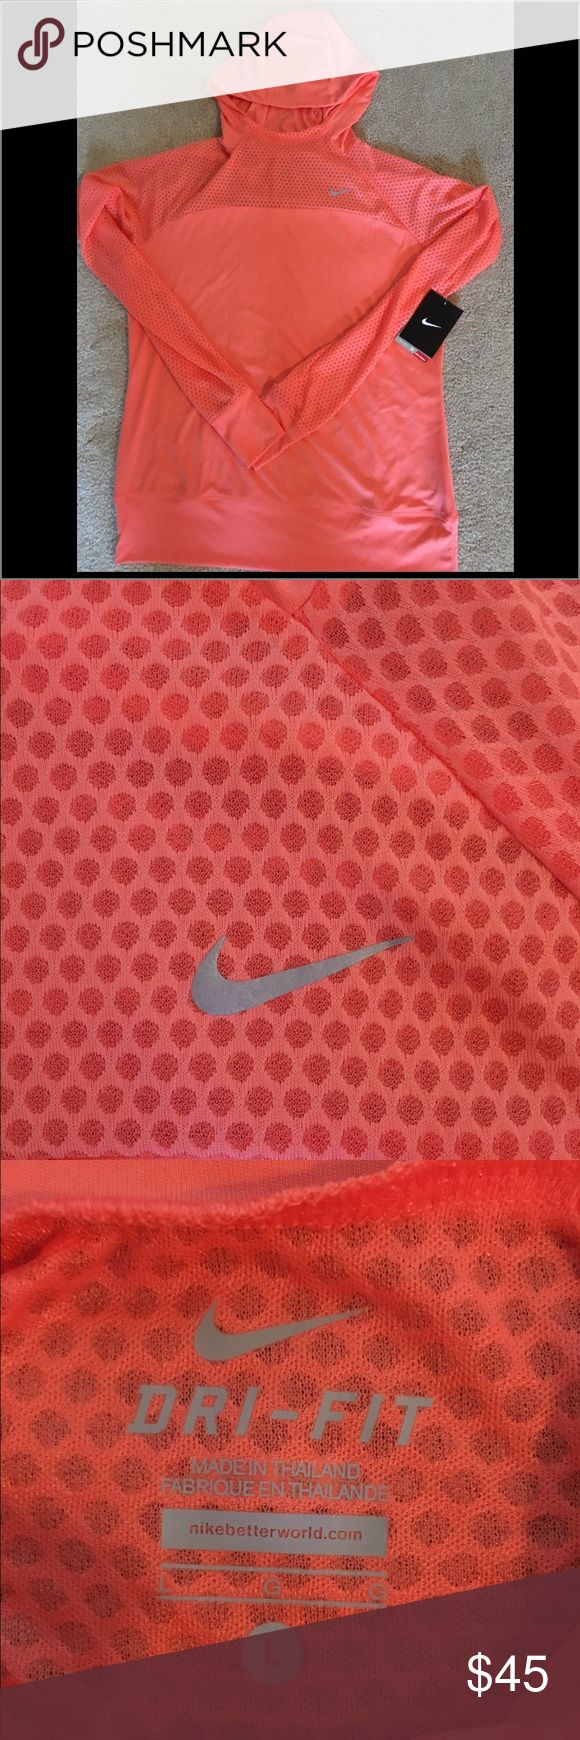 NWT Nike dri fit pullover NWT Nike women's dri fit pullover ! The arms and chest have mesh polka dots to allow for air to pass through which makes you cool down a lot quicker when you're working out or on a jog 😊 Nike Tops Sweatshirts & Hoodies